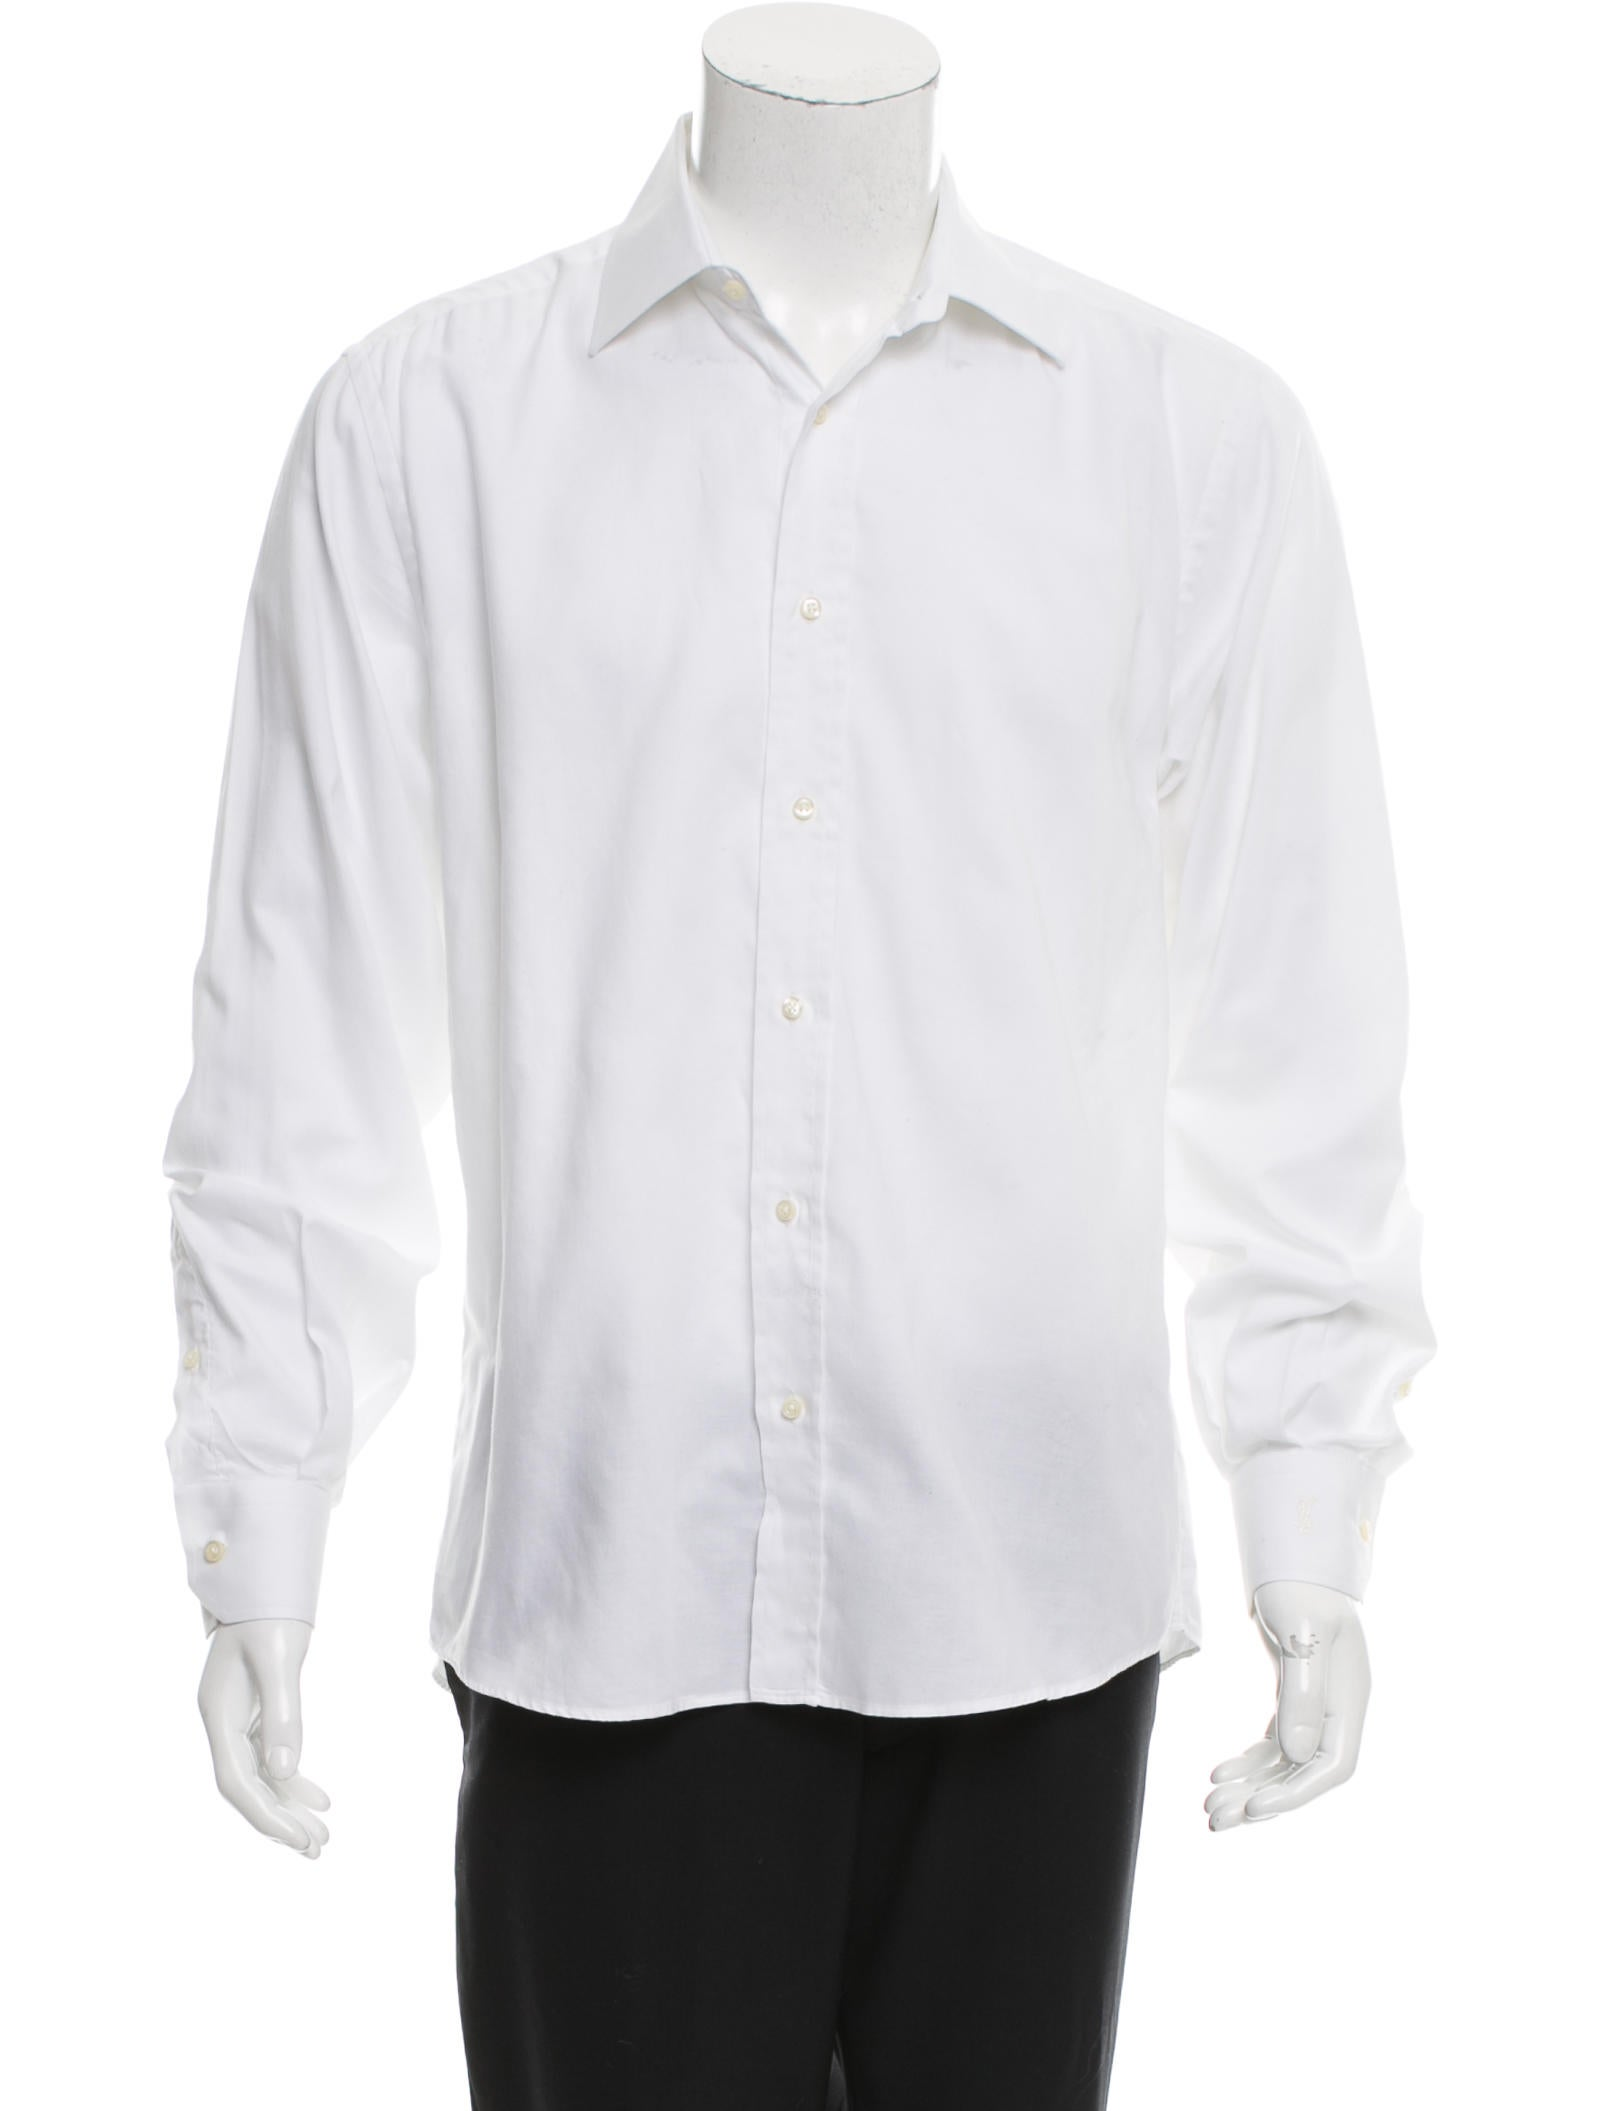 Yves Saint Laurent Button Up Shirt Clothing Yve69888